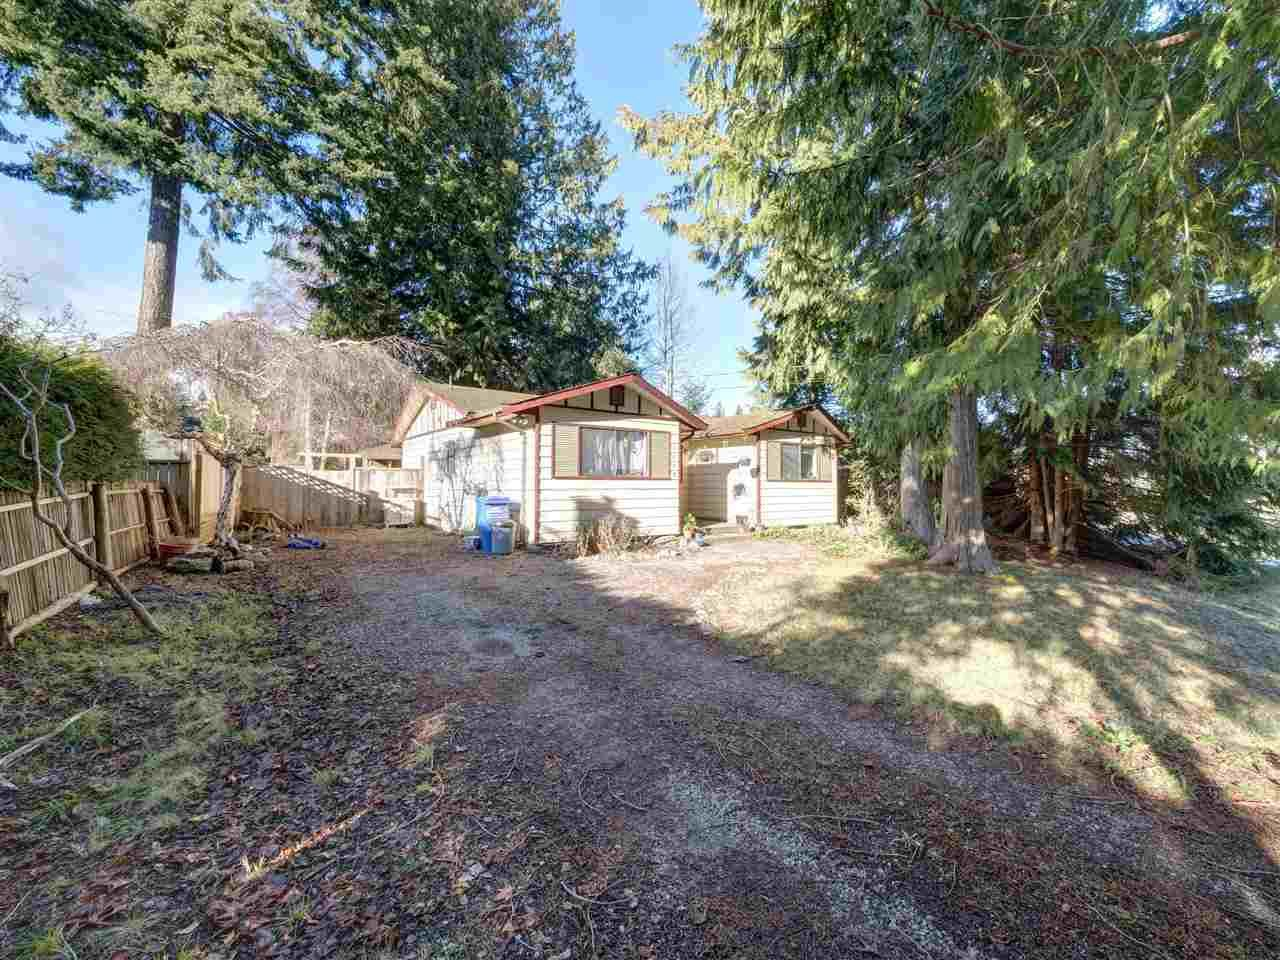 """Main Photo: 5669 SURF Circle in Sechelt: Sechelt District House for sale in """"SECHELT DOWNTOWN"""" (Sunshine Coast)  : MLS®# R2530445"""